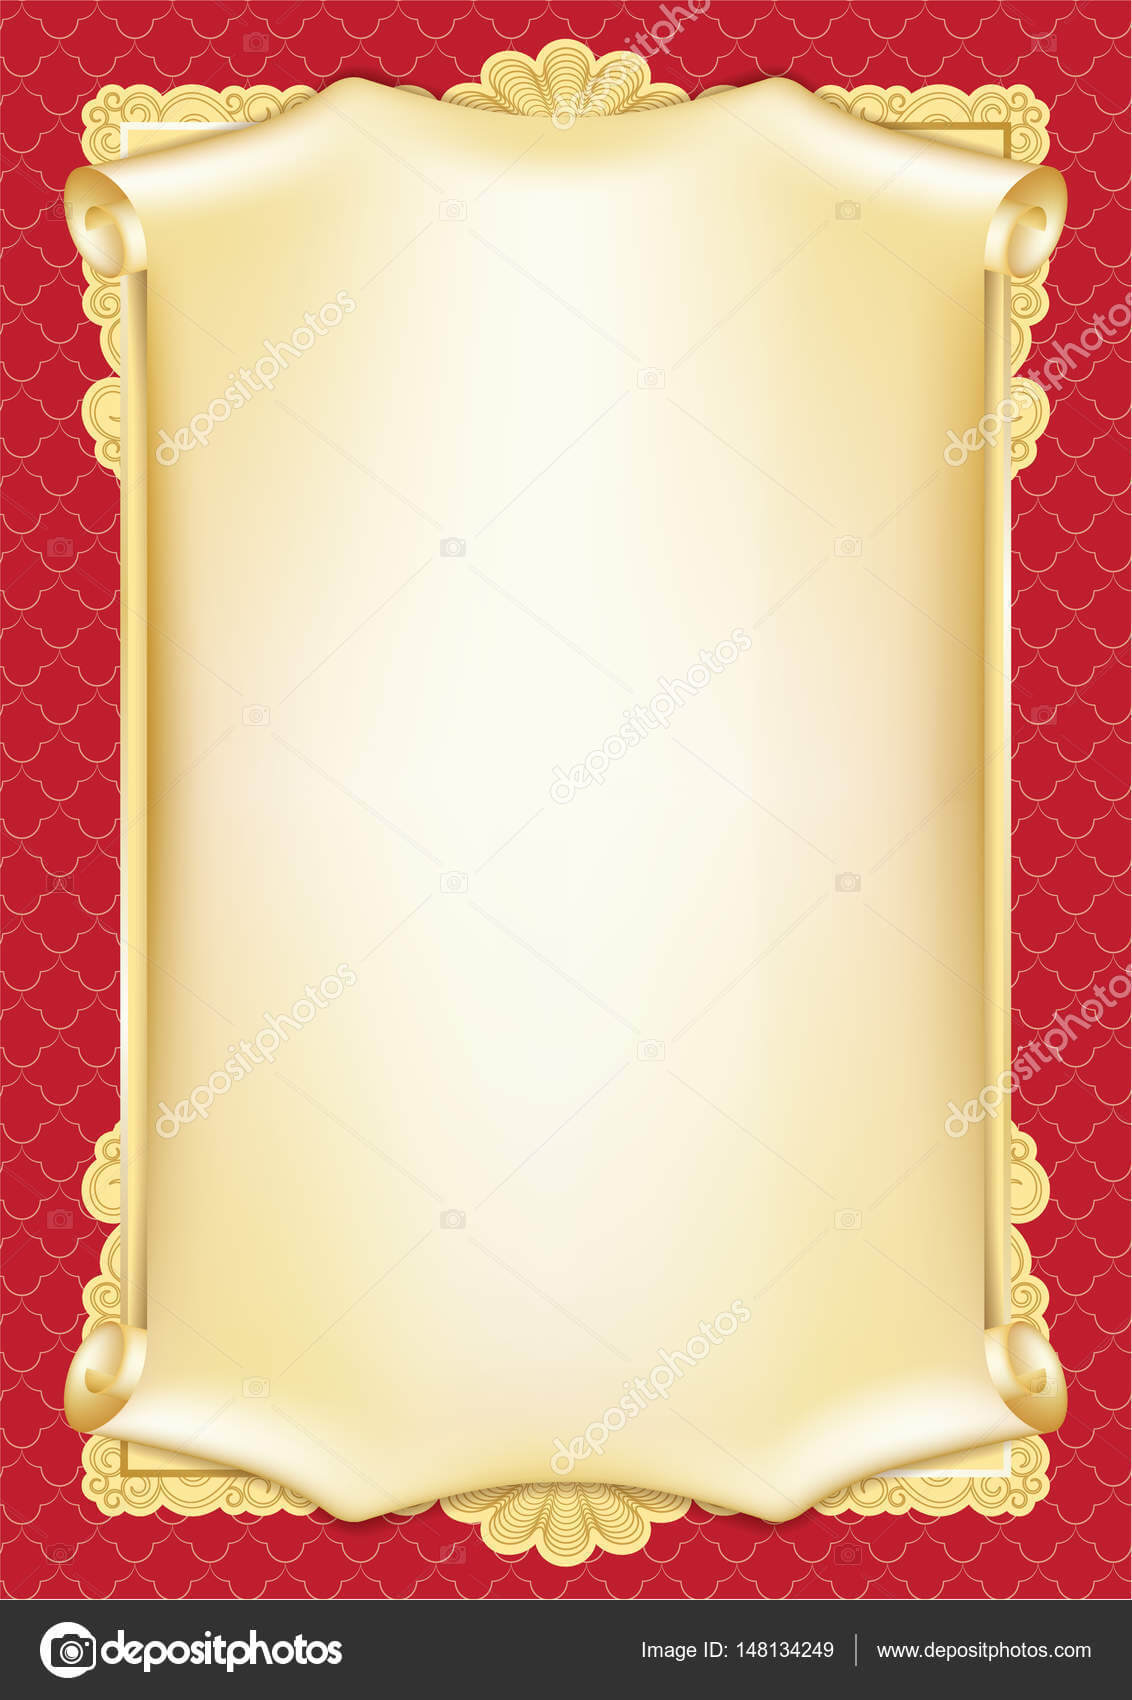 Template For Diploma, Certificate, Card With Scroll And Throughout Scroll Certificate Templates